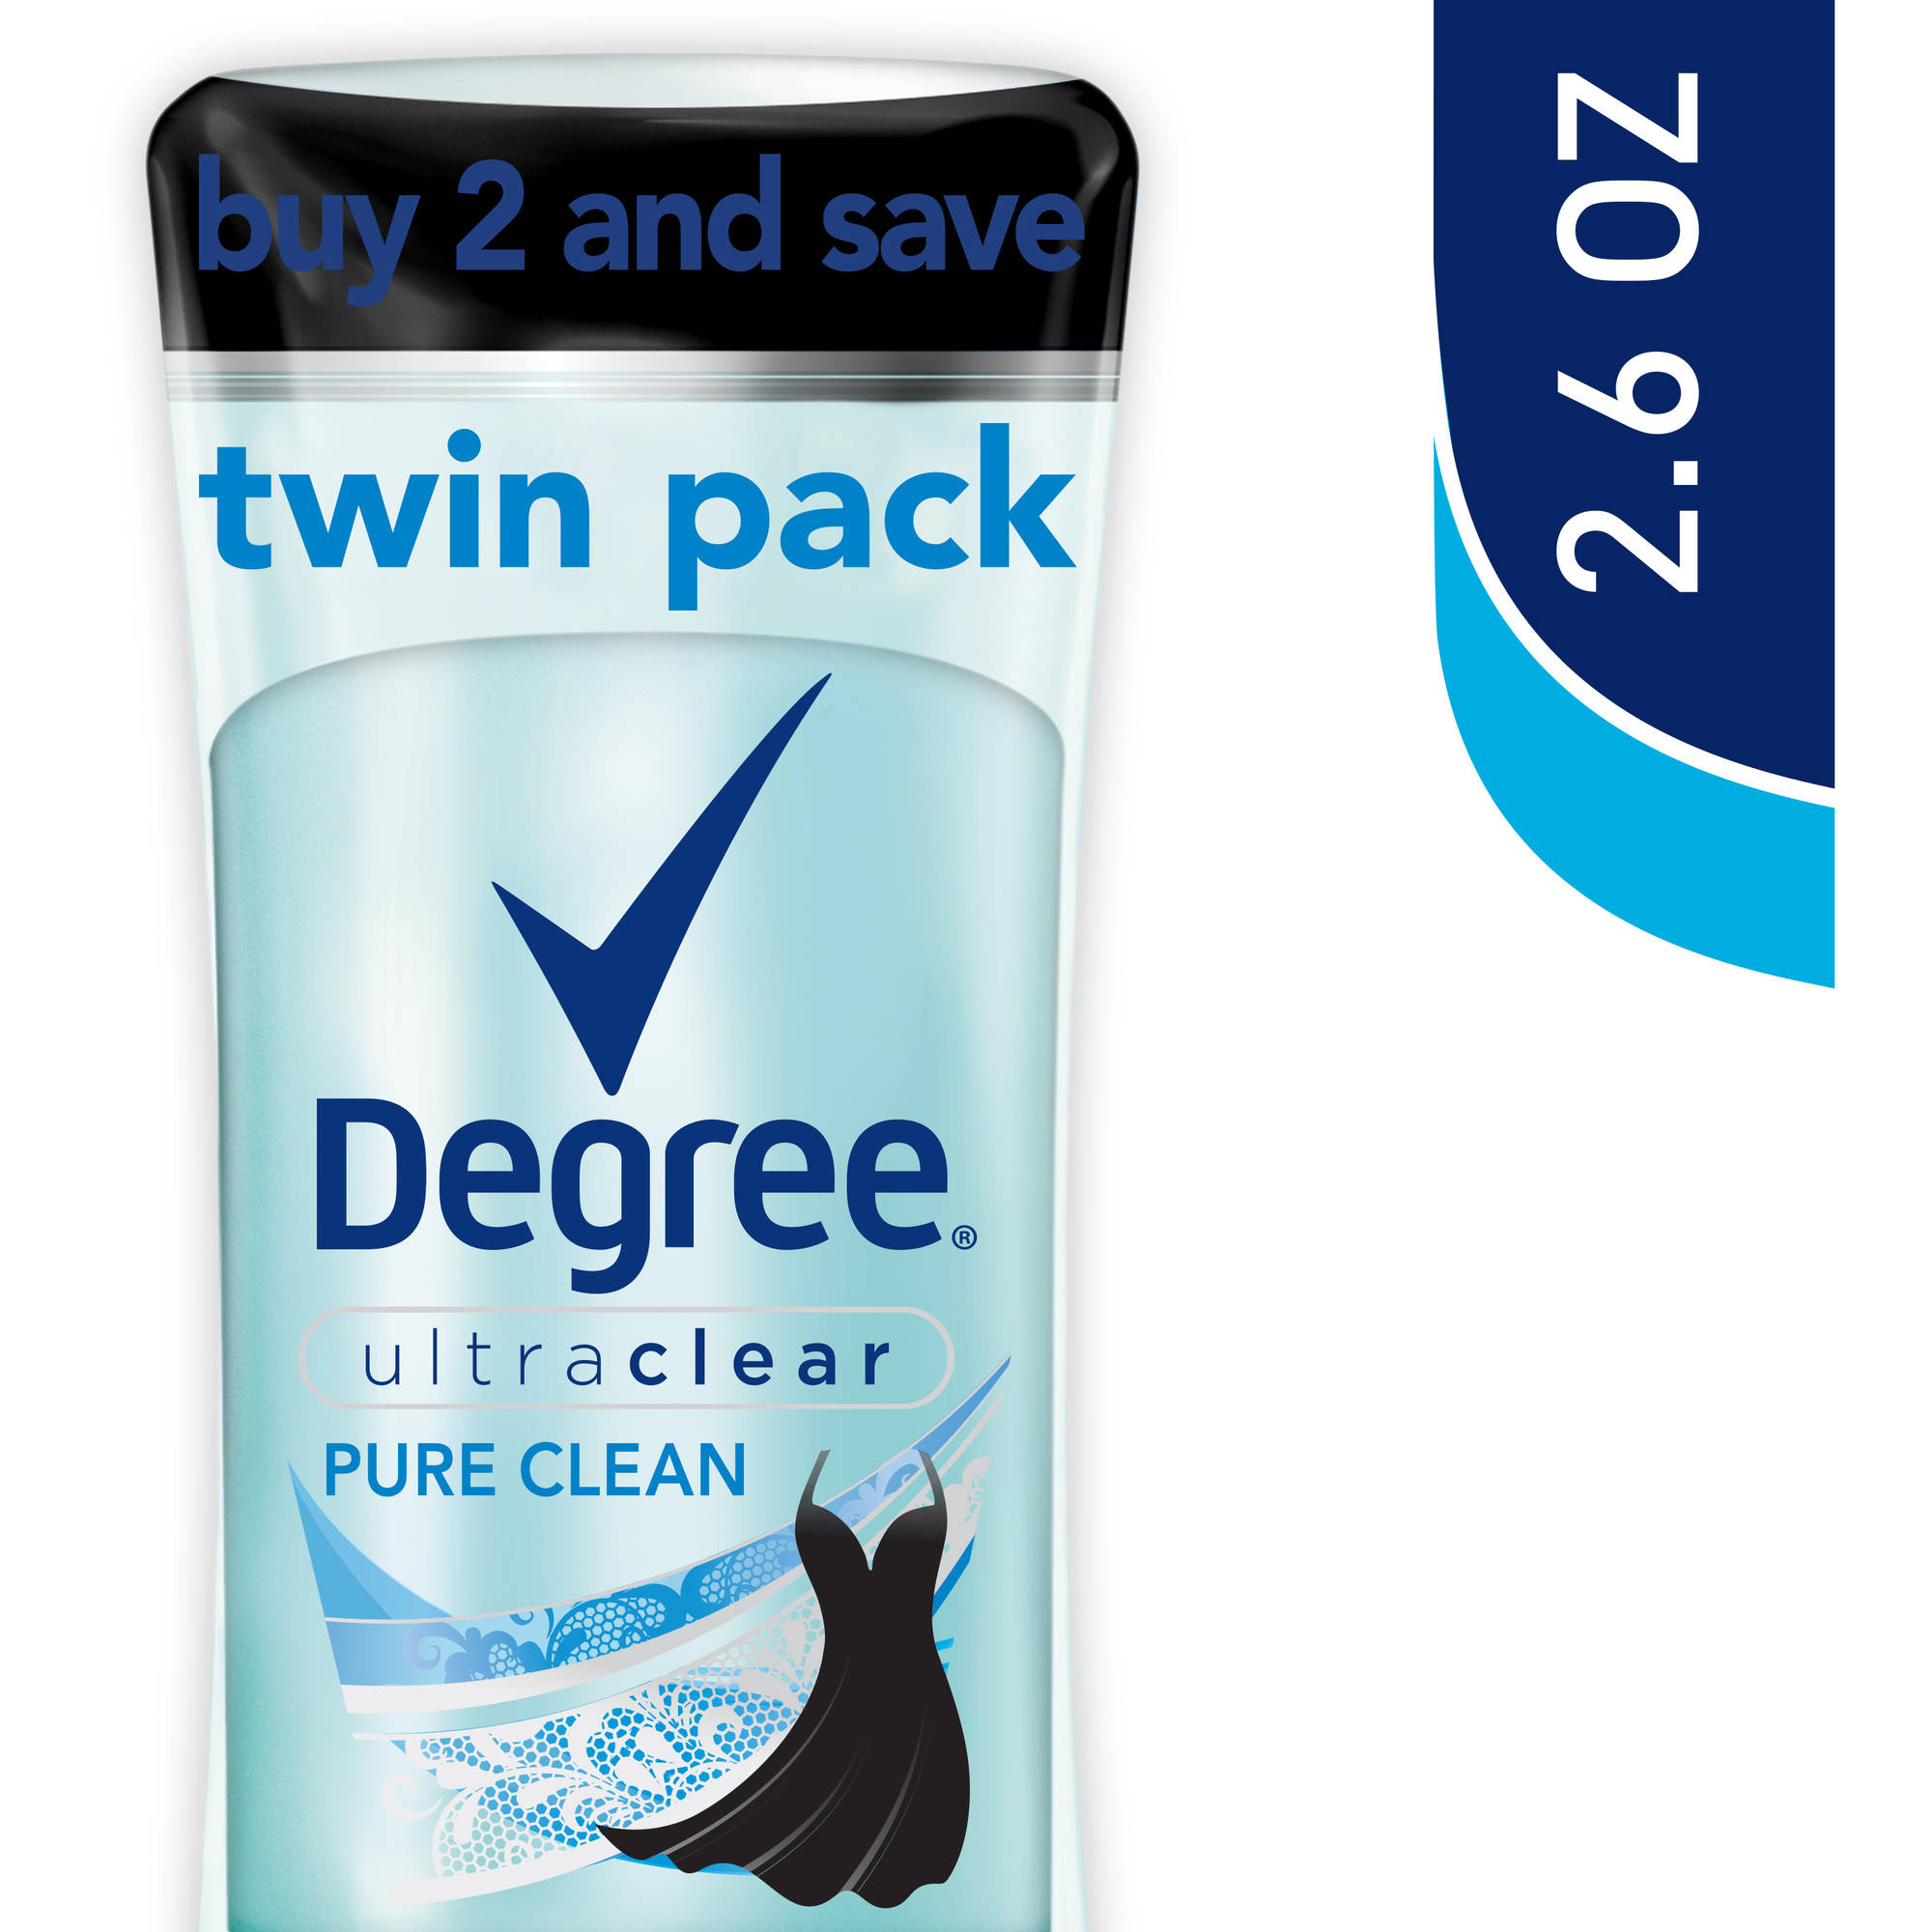 Degree Ultra Clear Pure Clean Anti-Perspirant & Deodorant, 2.6 oz, Twin Pack